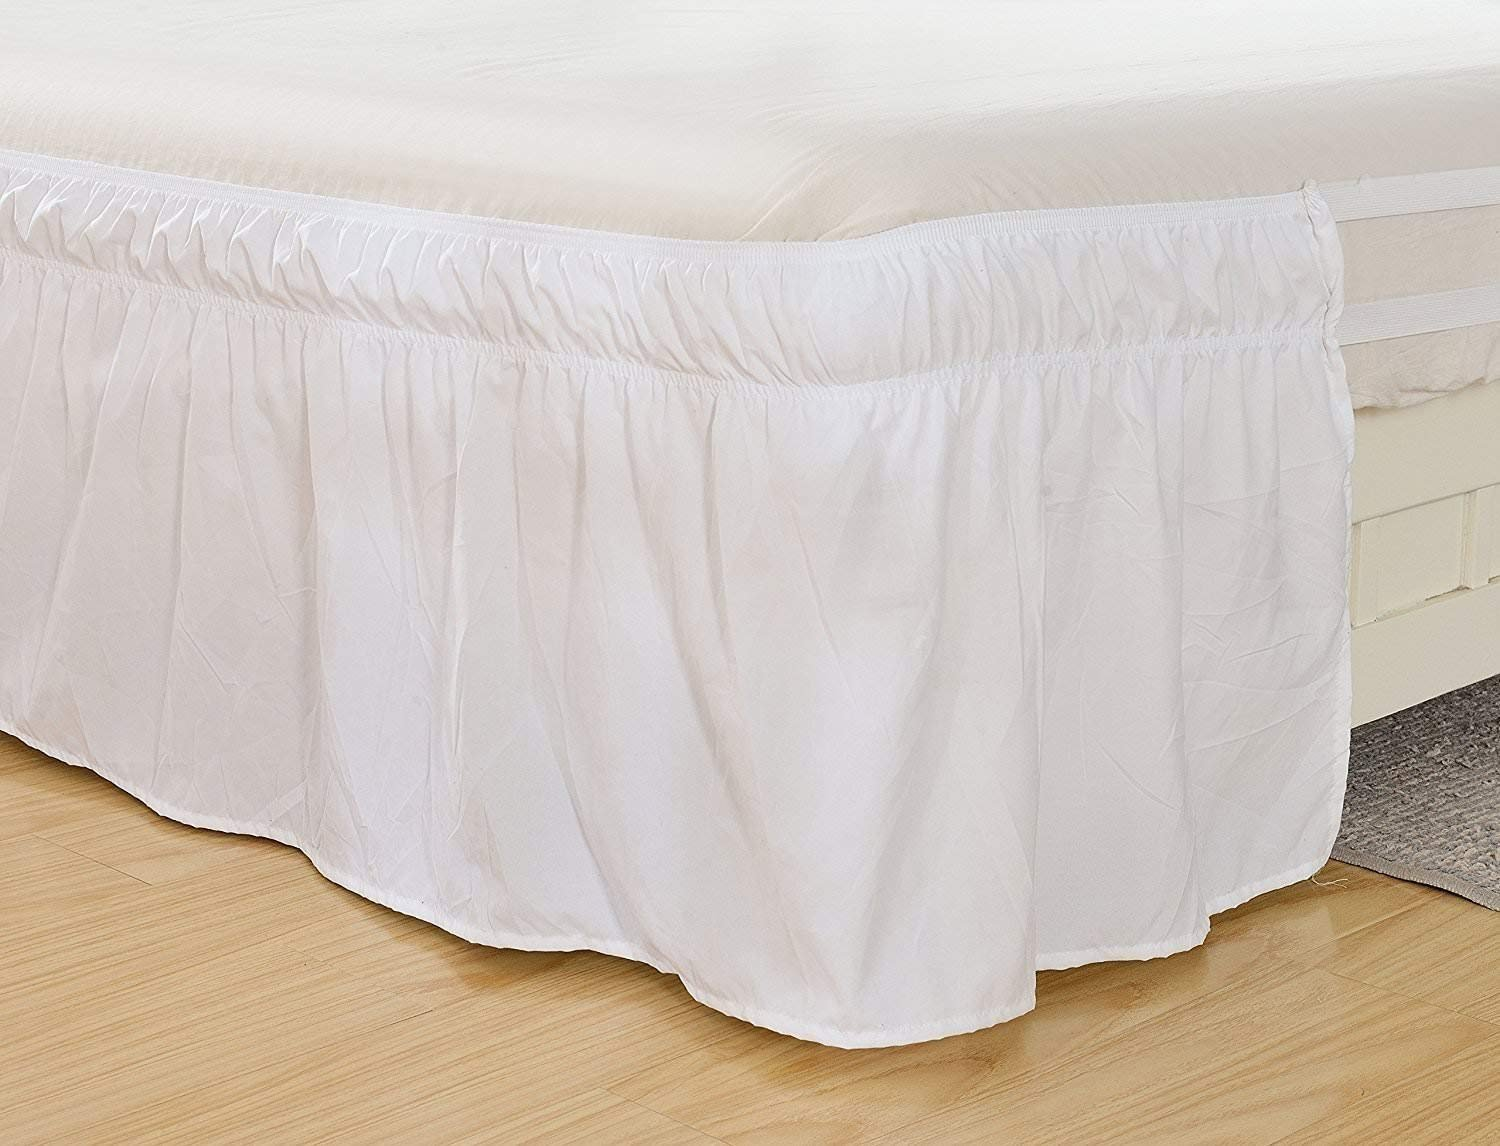 Rajlinen Wrap Around Bed Skirt -Polyester/Microfiber Elastic Dust Ruffle Three Fabric Sides Silky Soft & Wrinkle Free Classic Stylish Look in Your Bedroom (White, King /21)